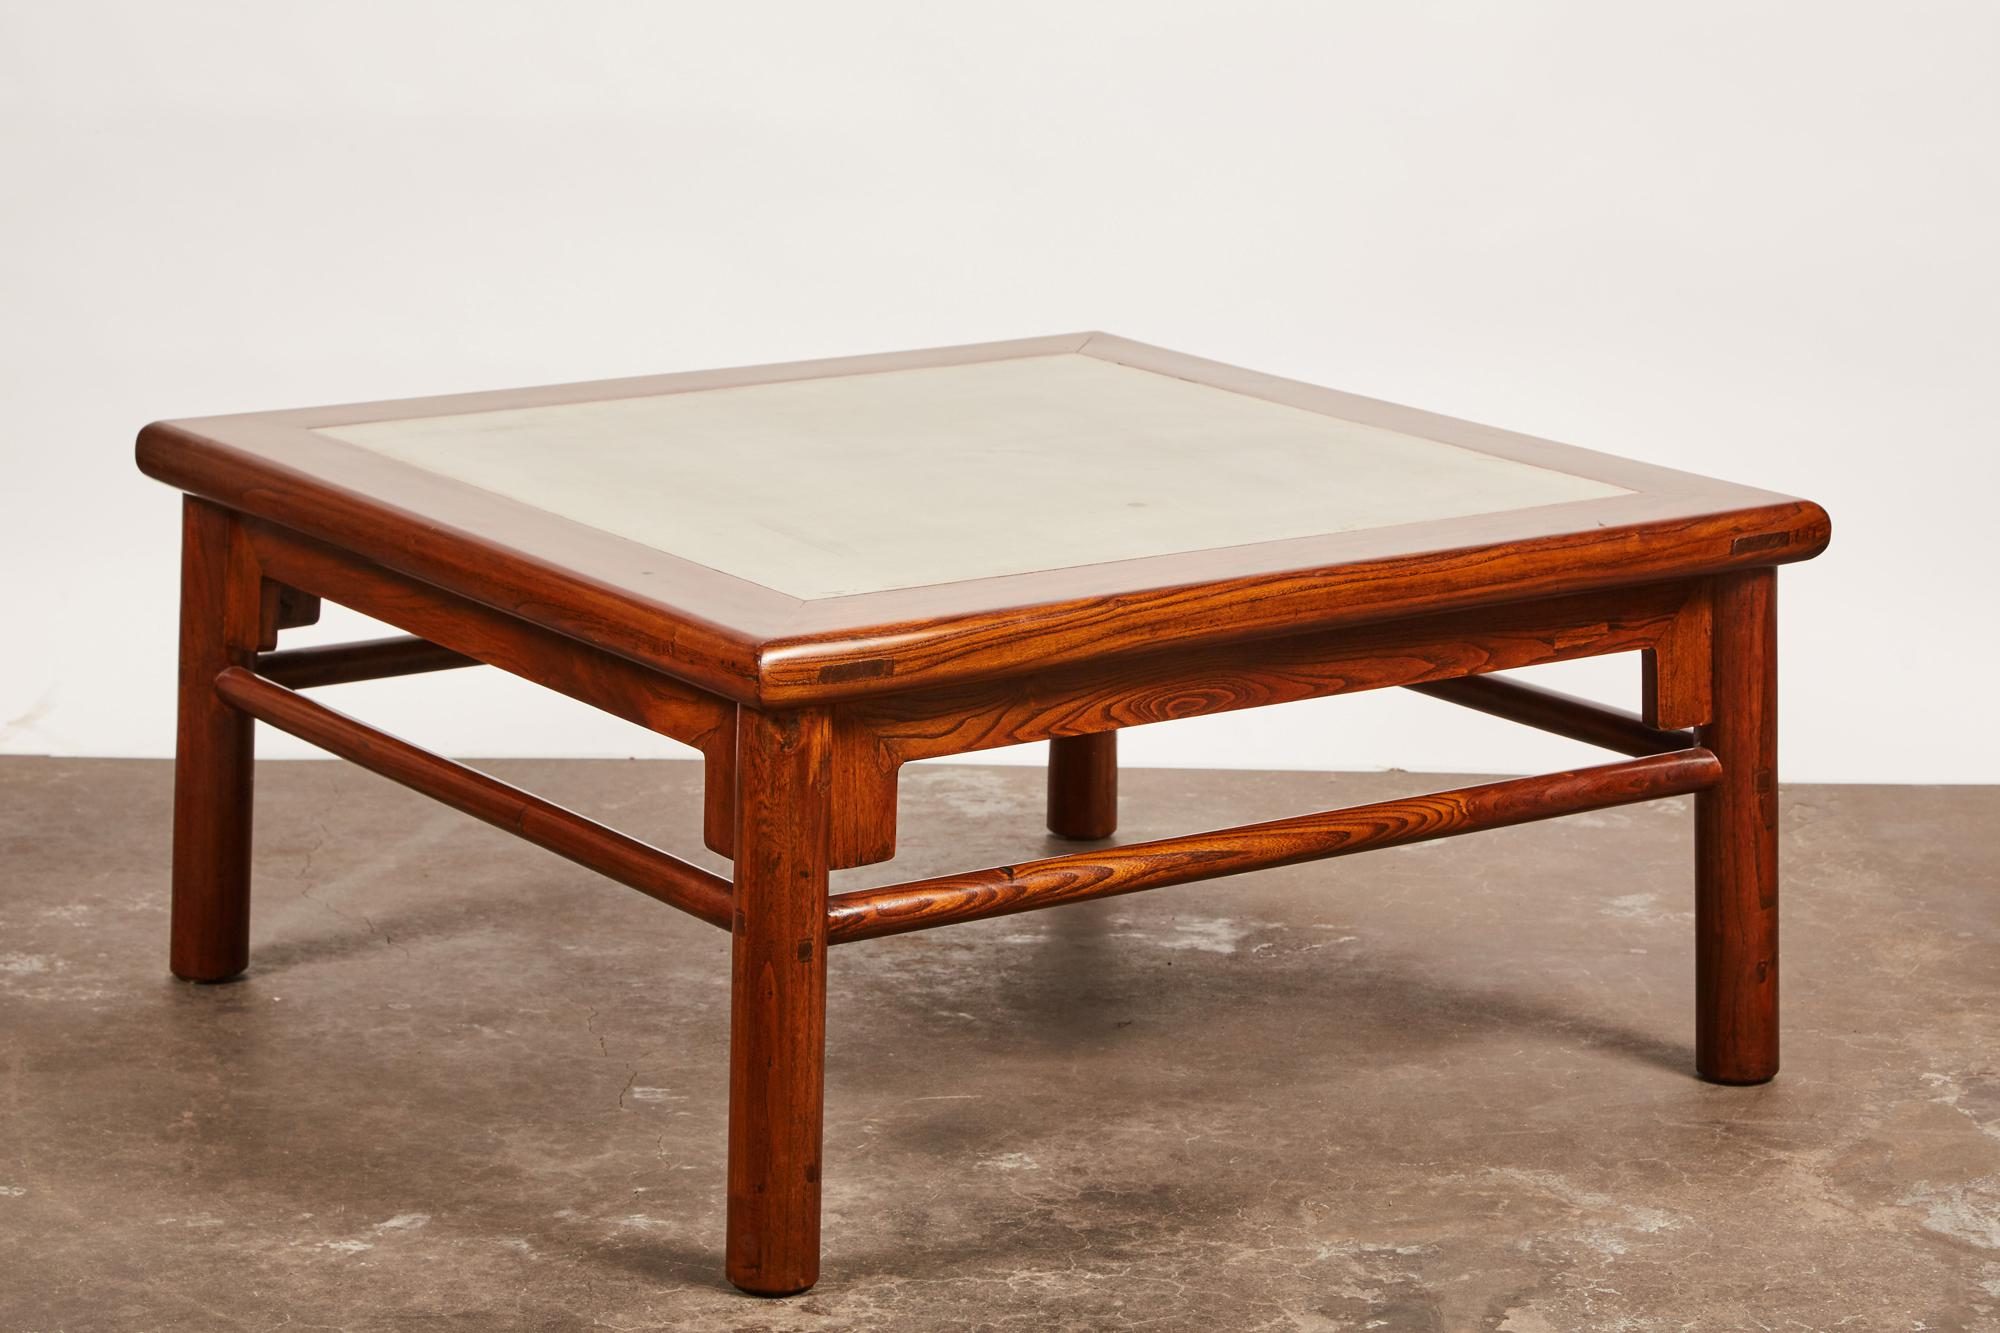 Superior 20th Century Ming Elm Coffee Table with a Mint Green